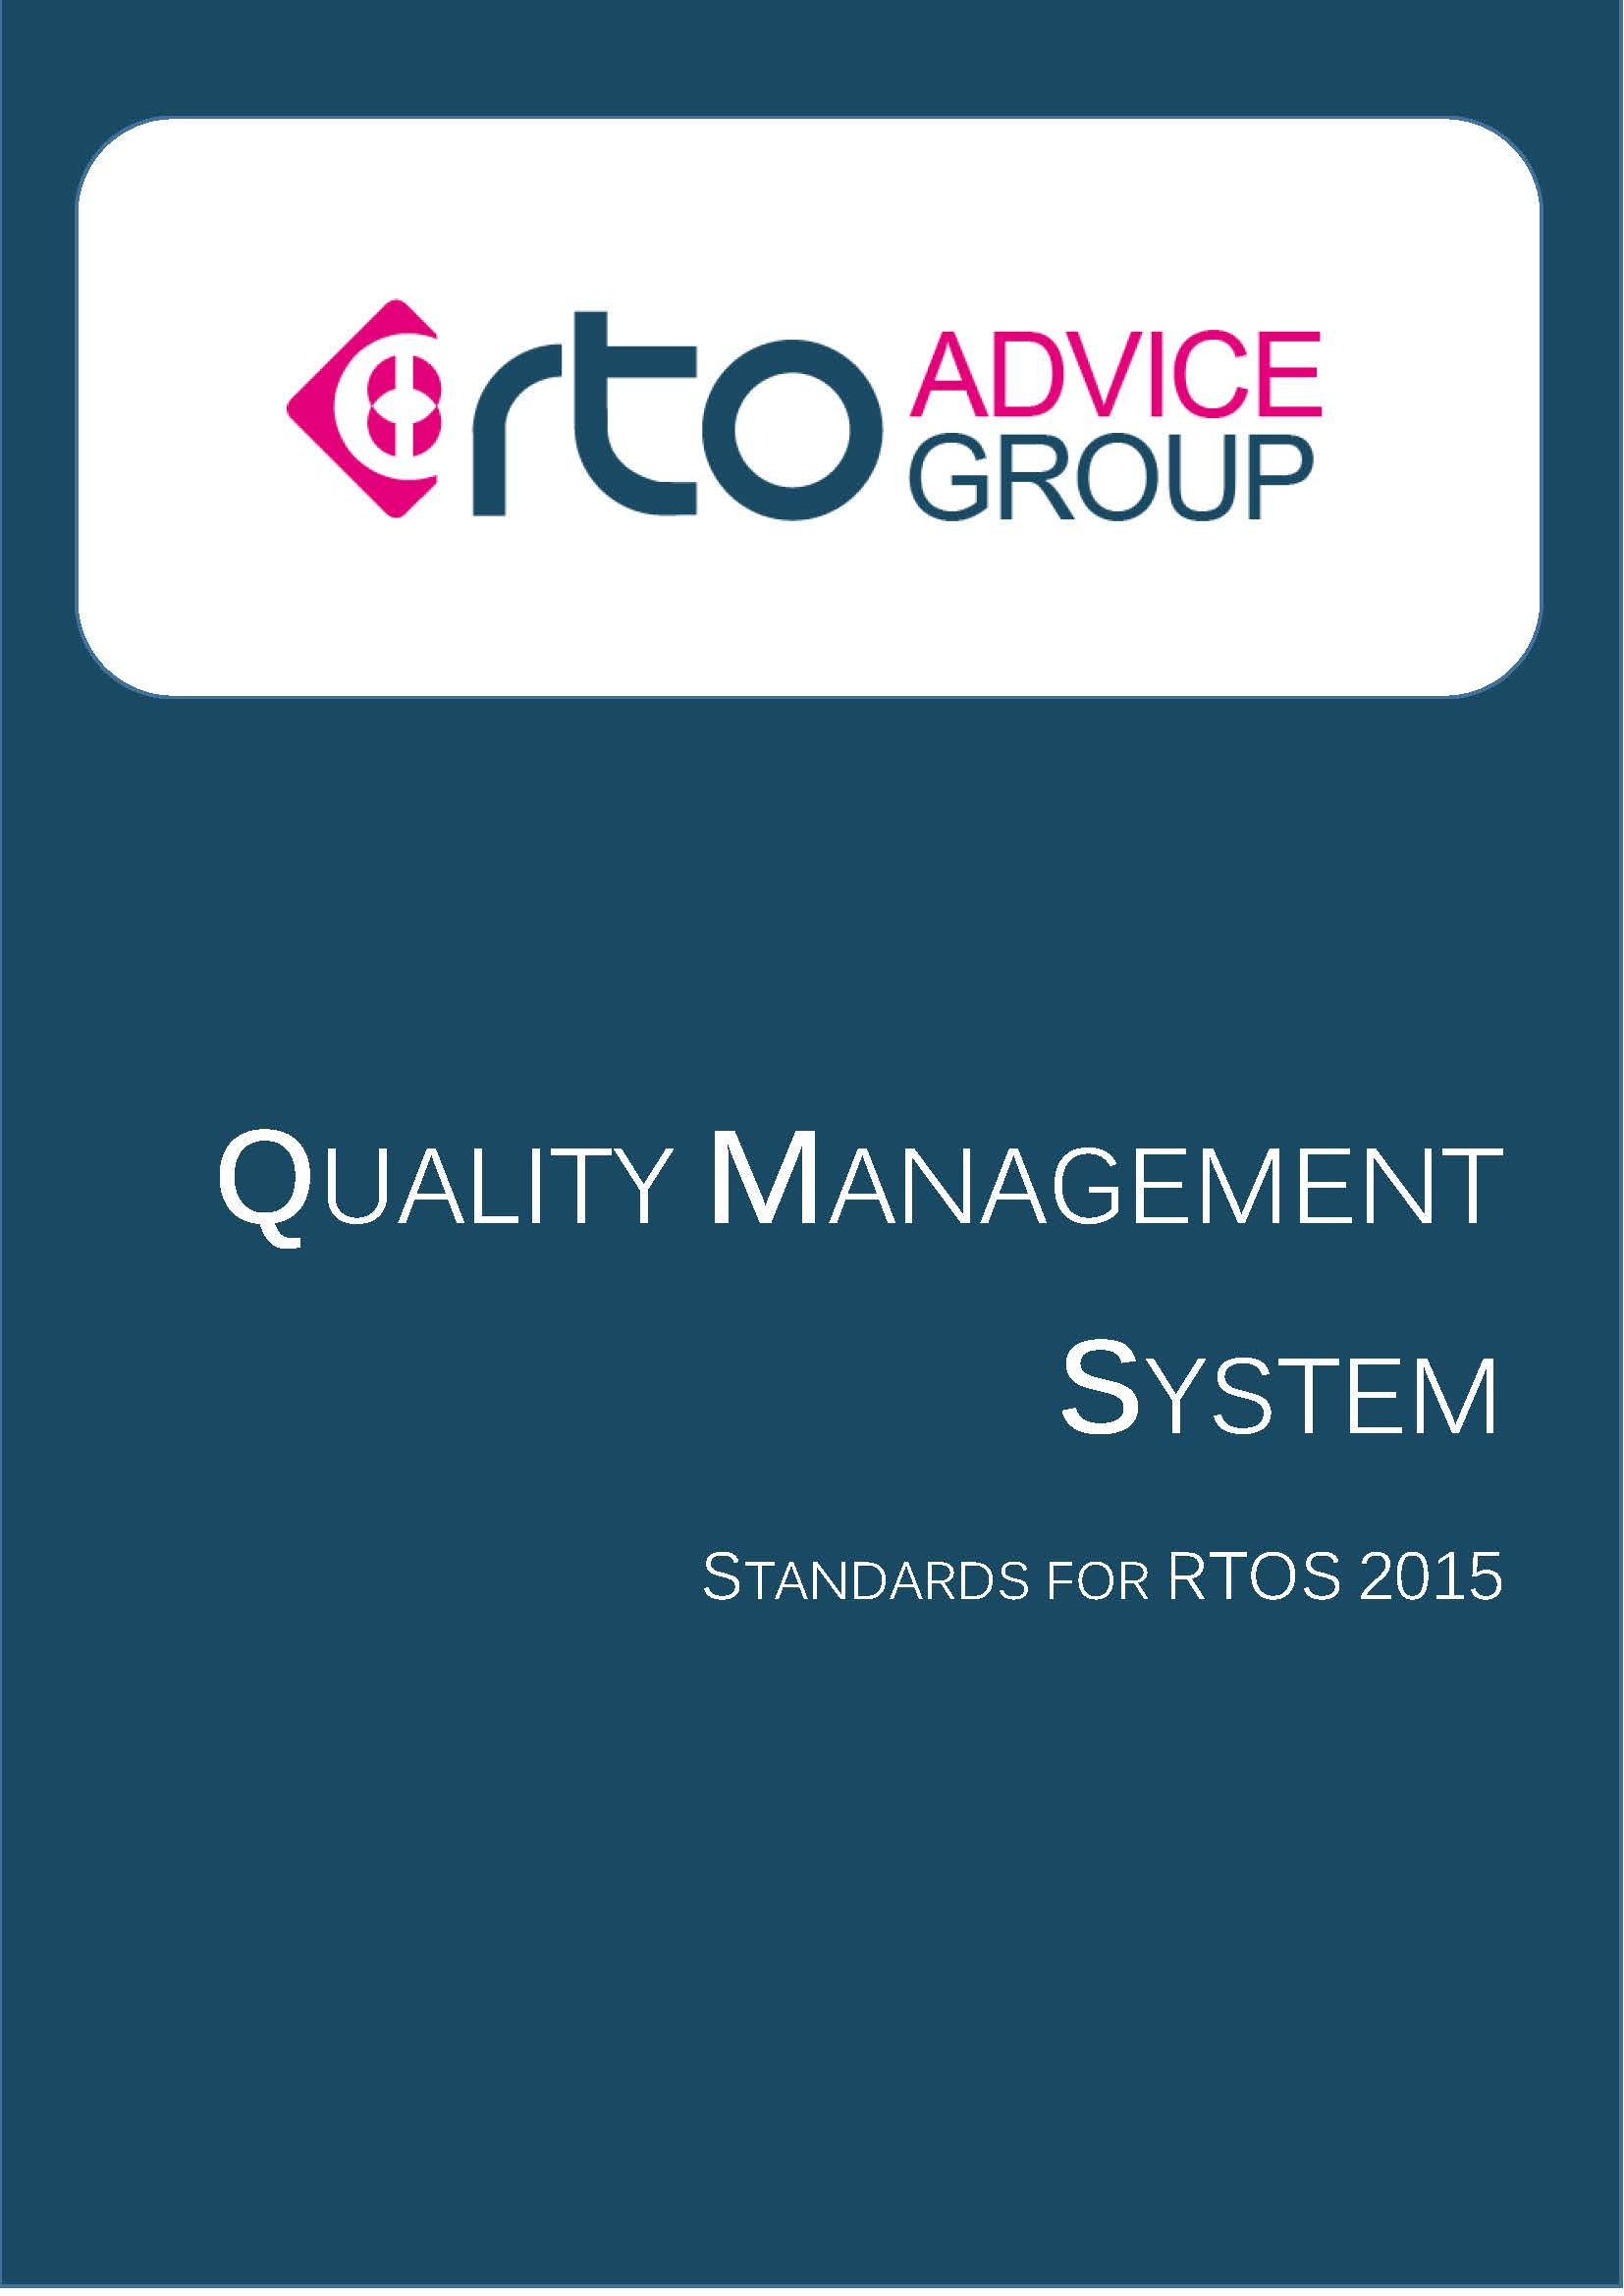 Quality Management System – Standards for RTOs 2015